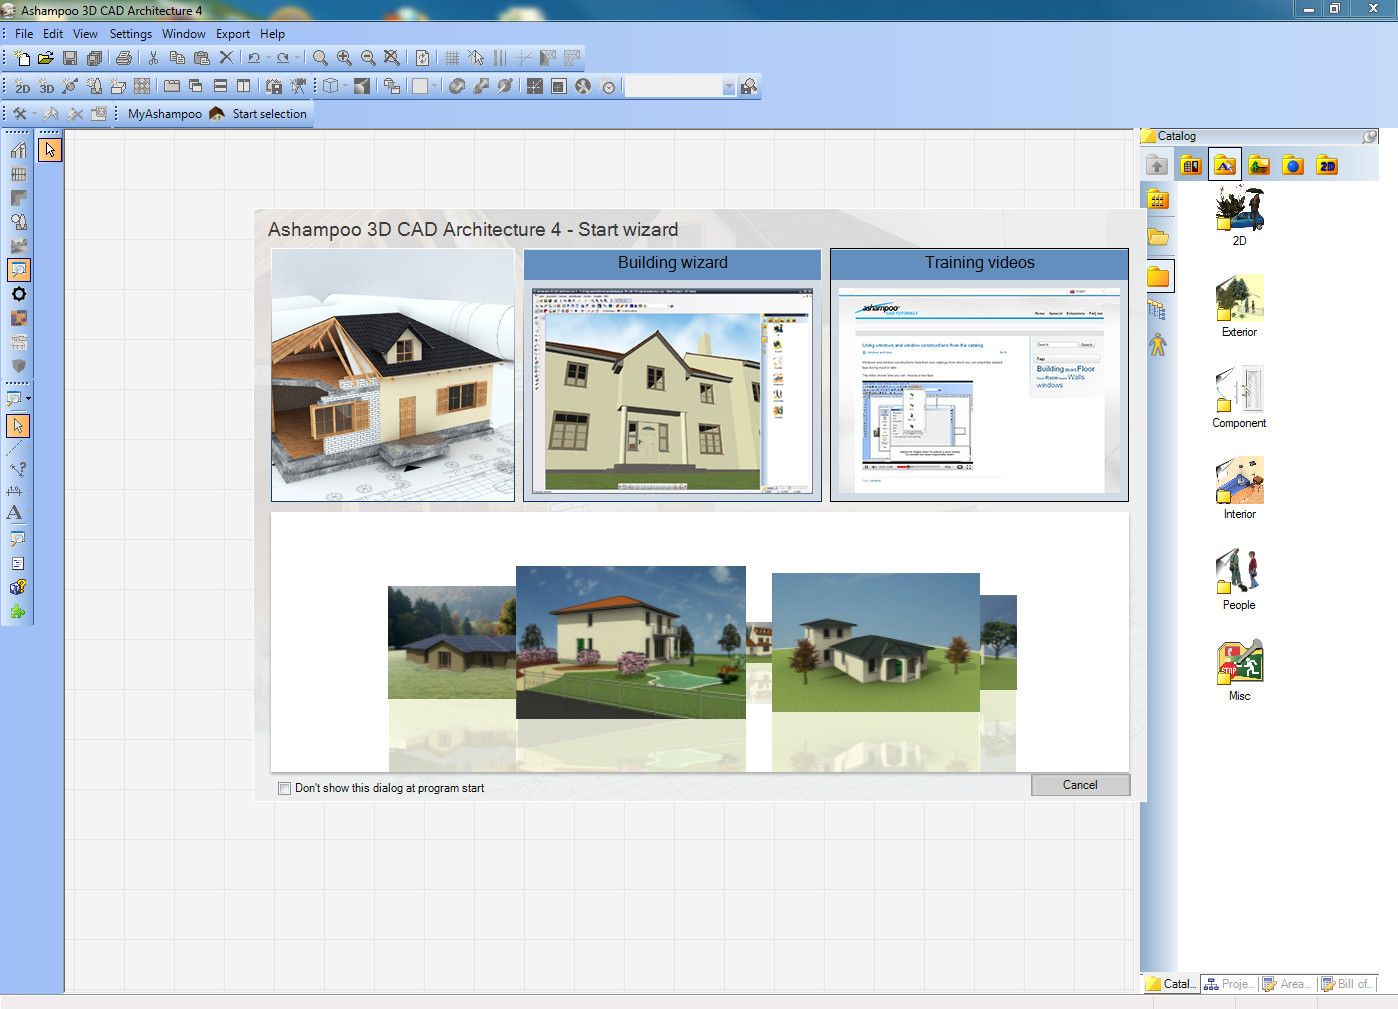 New ashampoo 3d cad architecture 4 best software 4 for 3d architecture software online